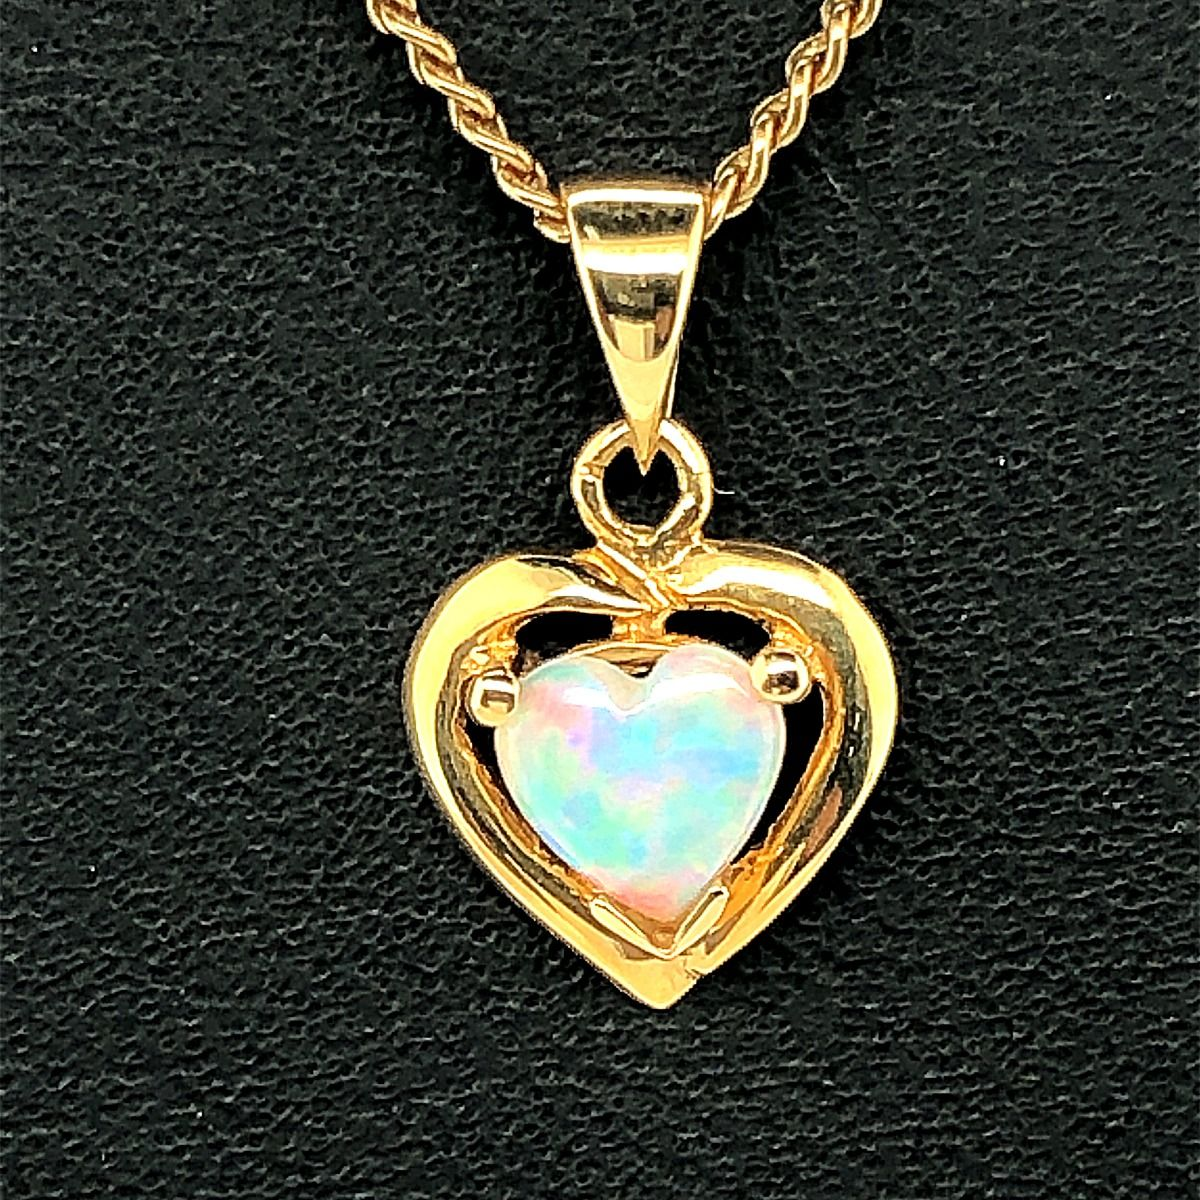 18ct heart shaped solid opal pendant